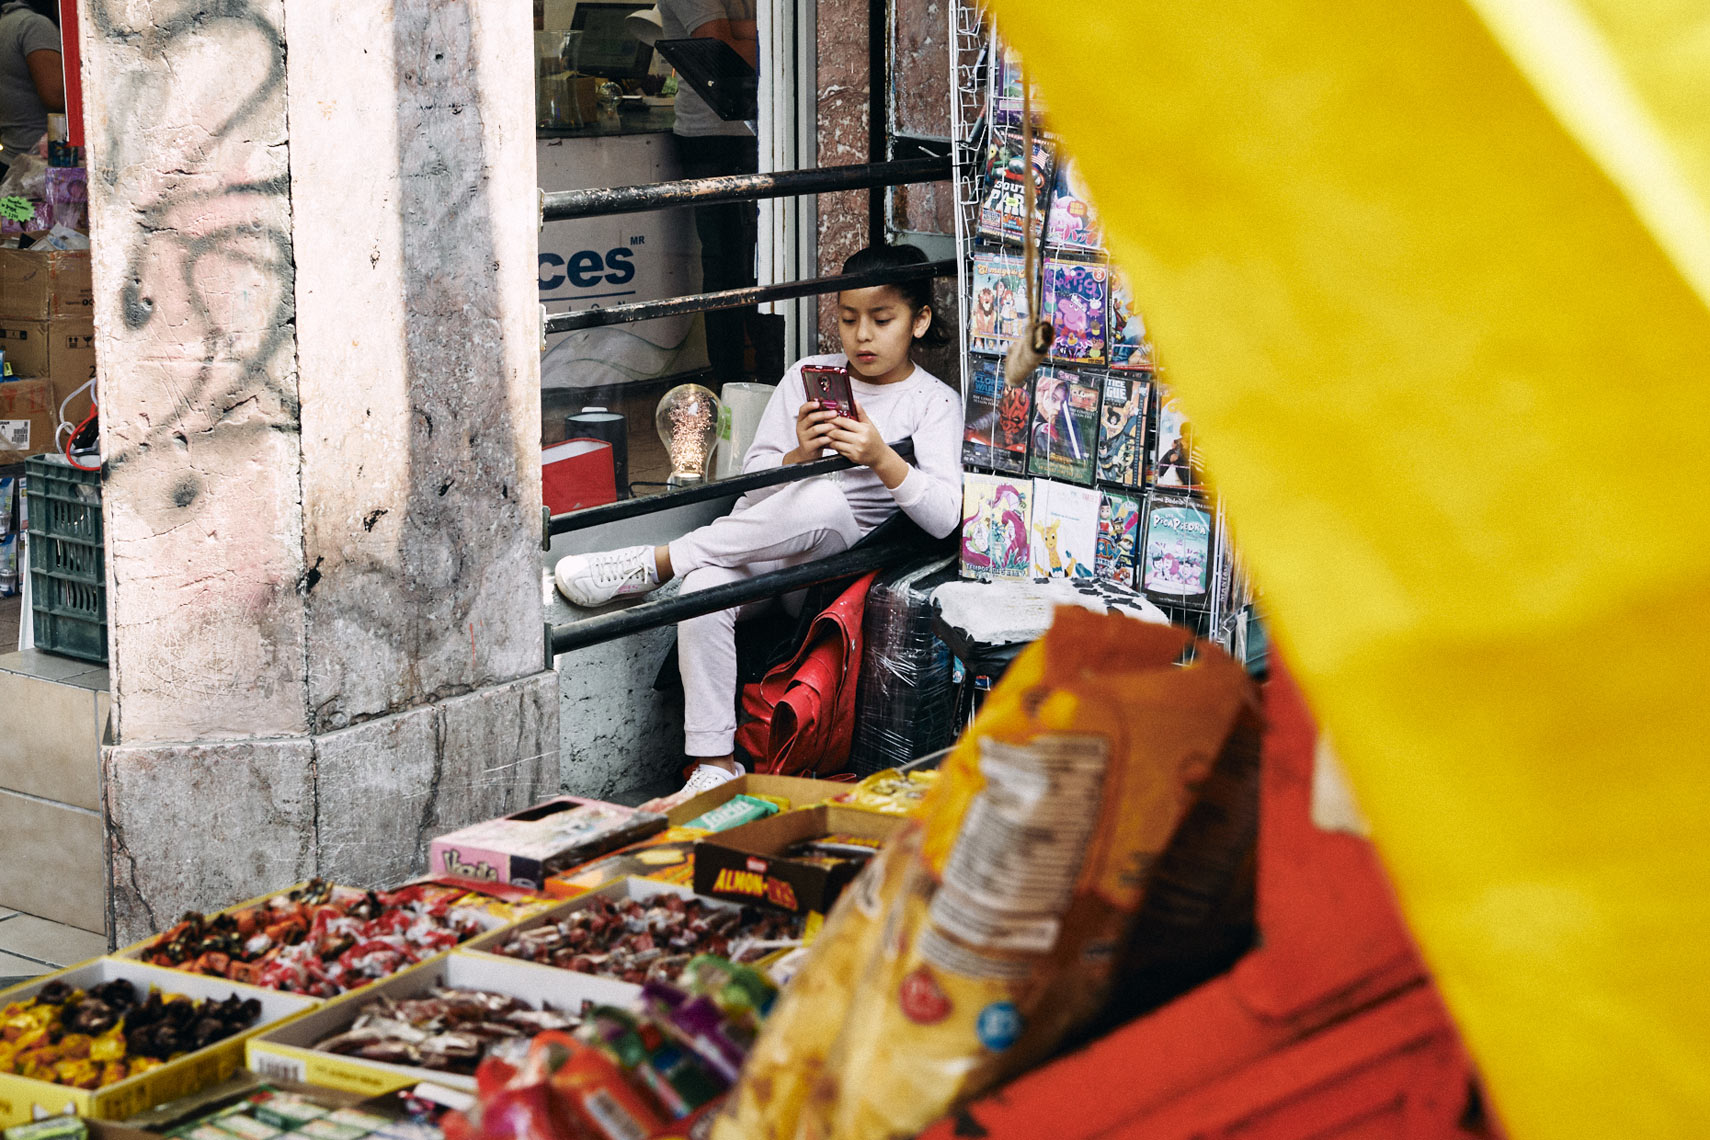 Young-Mexican-girl-taking-a-break-near-street-vendor